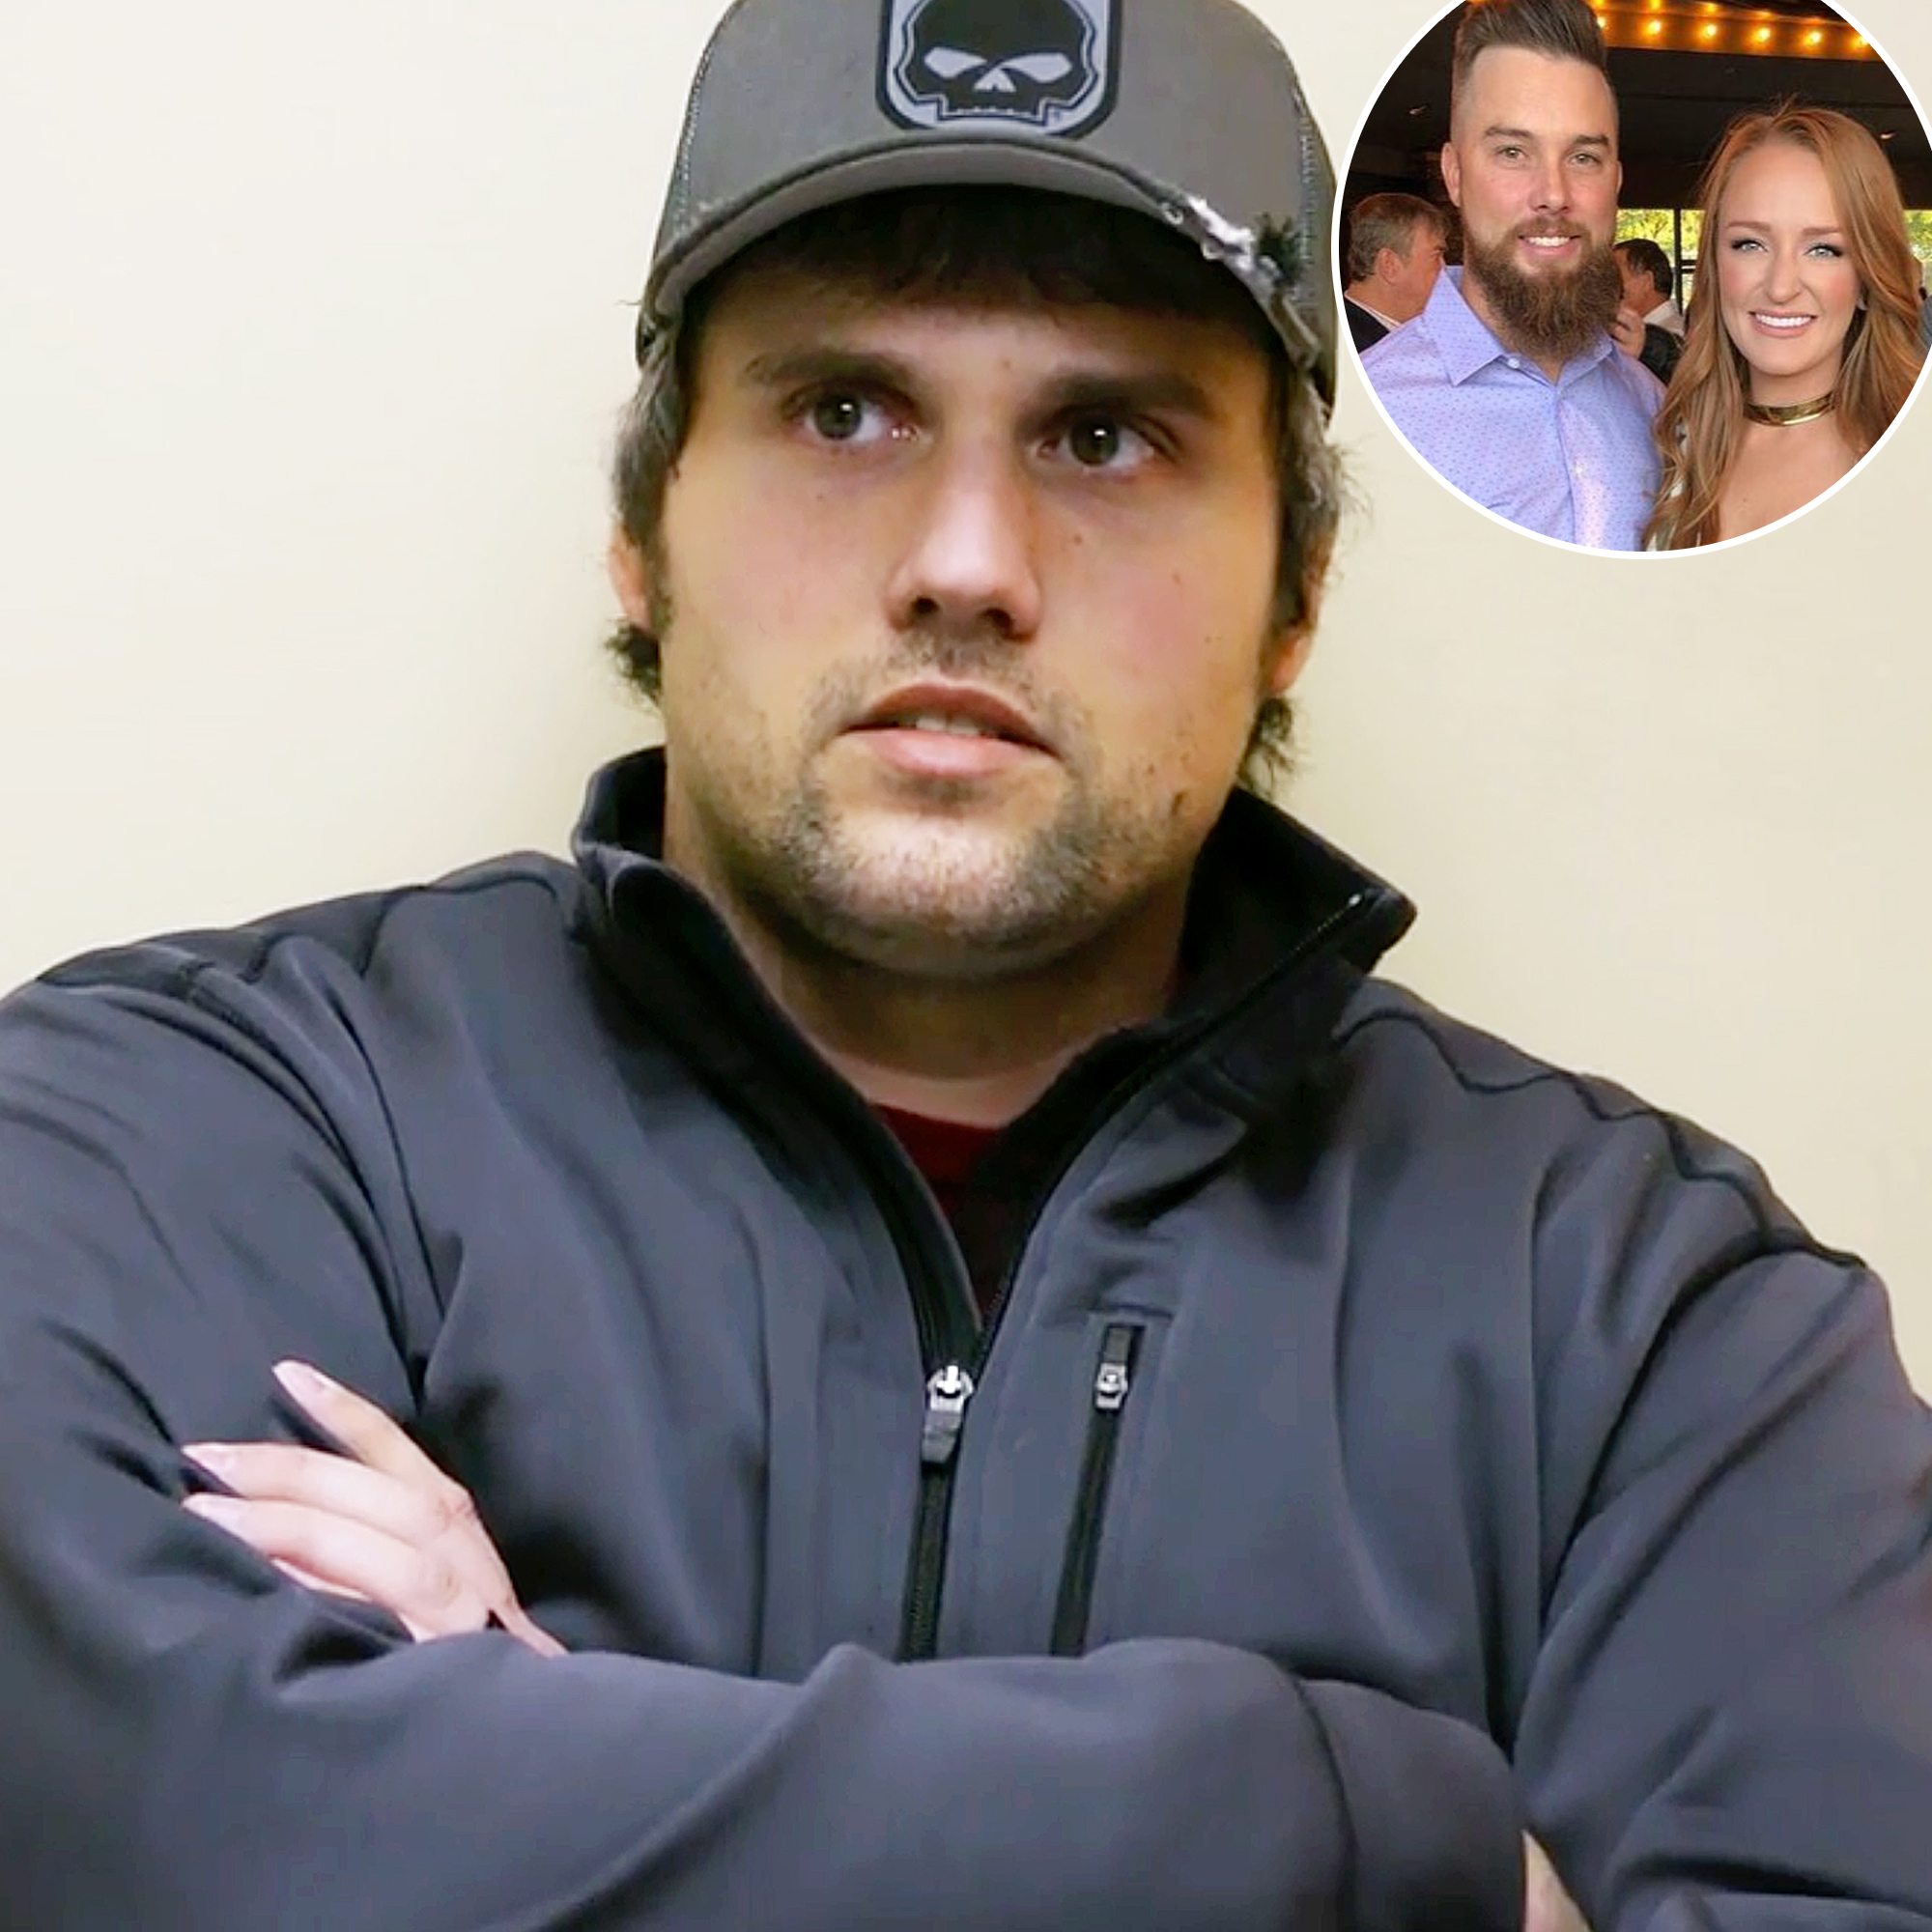 Ryan Edwards Fires Back at Maci Bookout's Husband Taylor After Explosive 'TMOG' Reunion: He's a 'Punk'